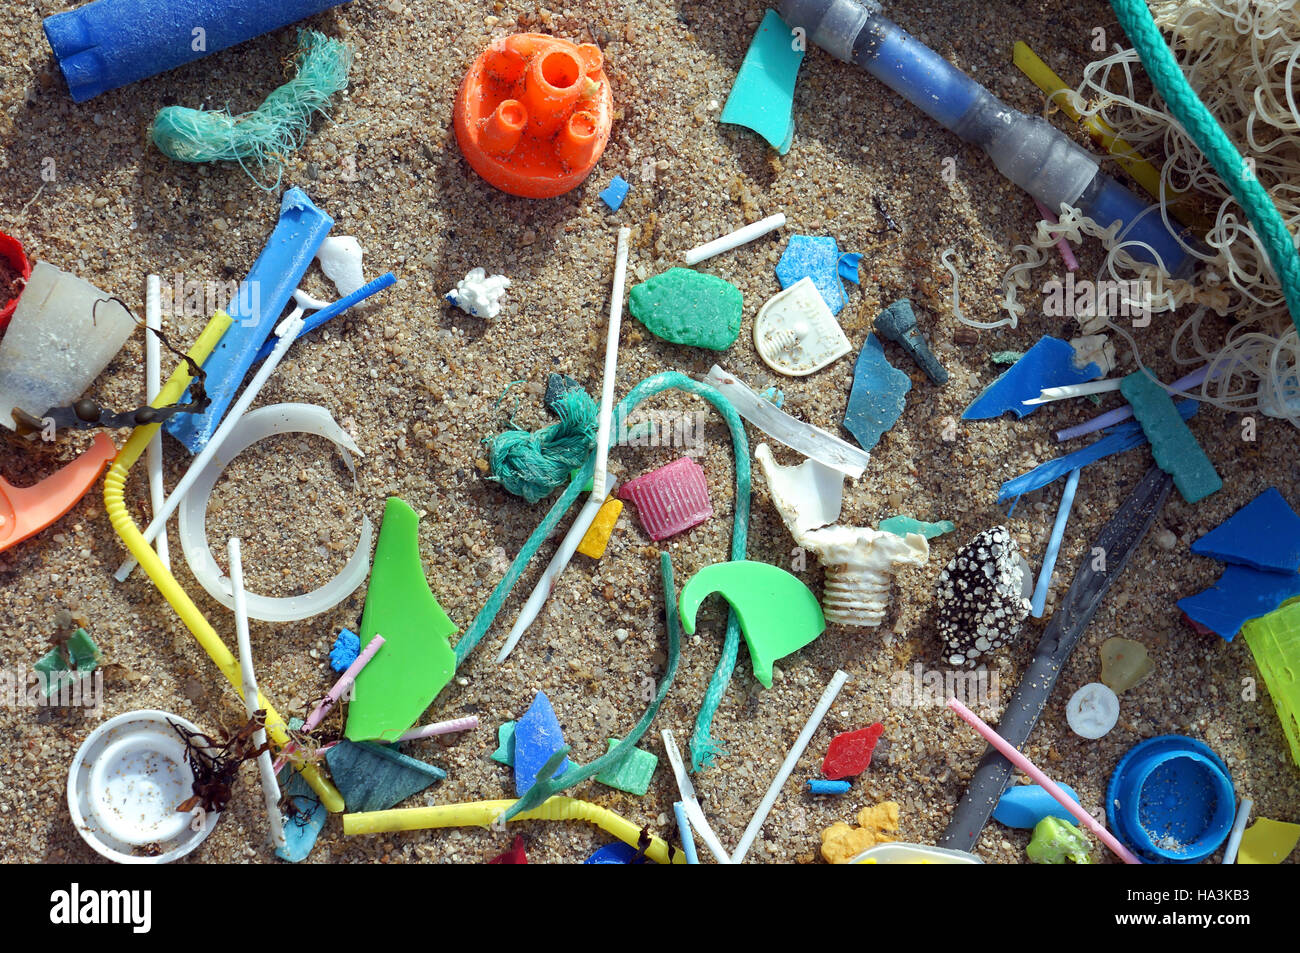 Plastic debris washed ashore on the beach. Plastic pollution. Portugal - Stock Image